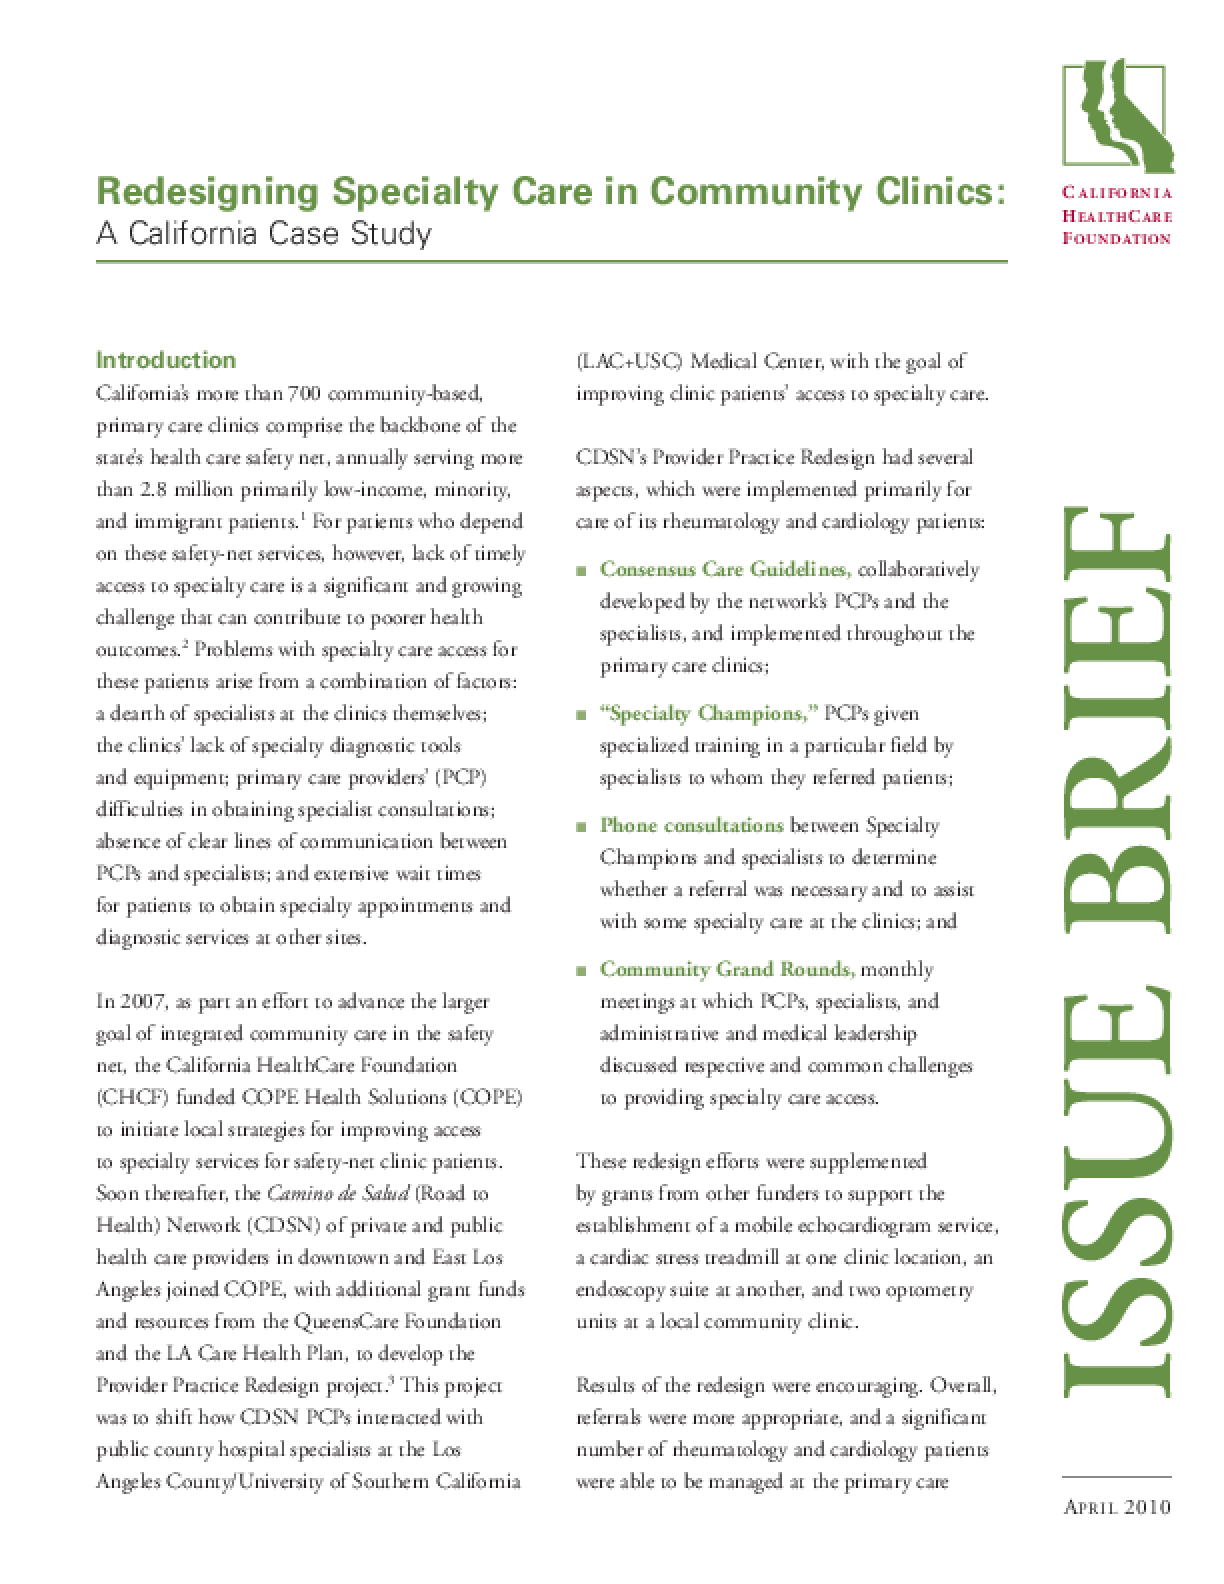 Redesigning Specialty Care in Community Clinics: A California Case Study